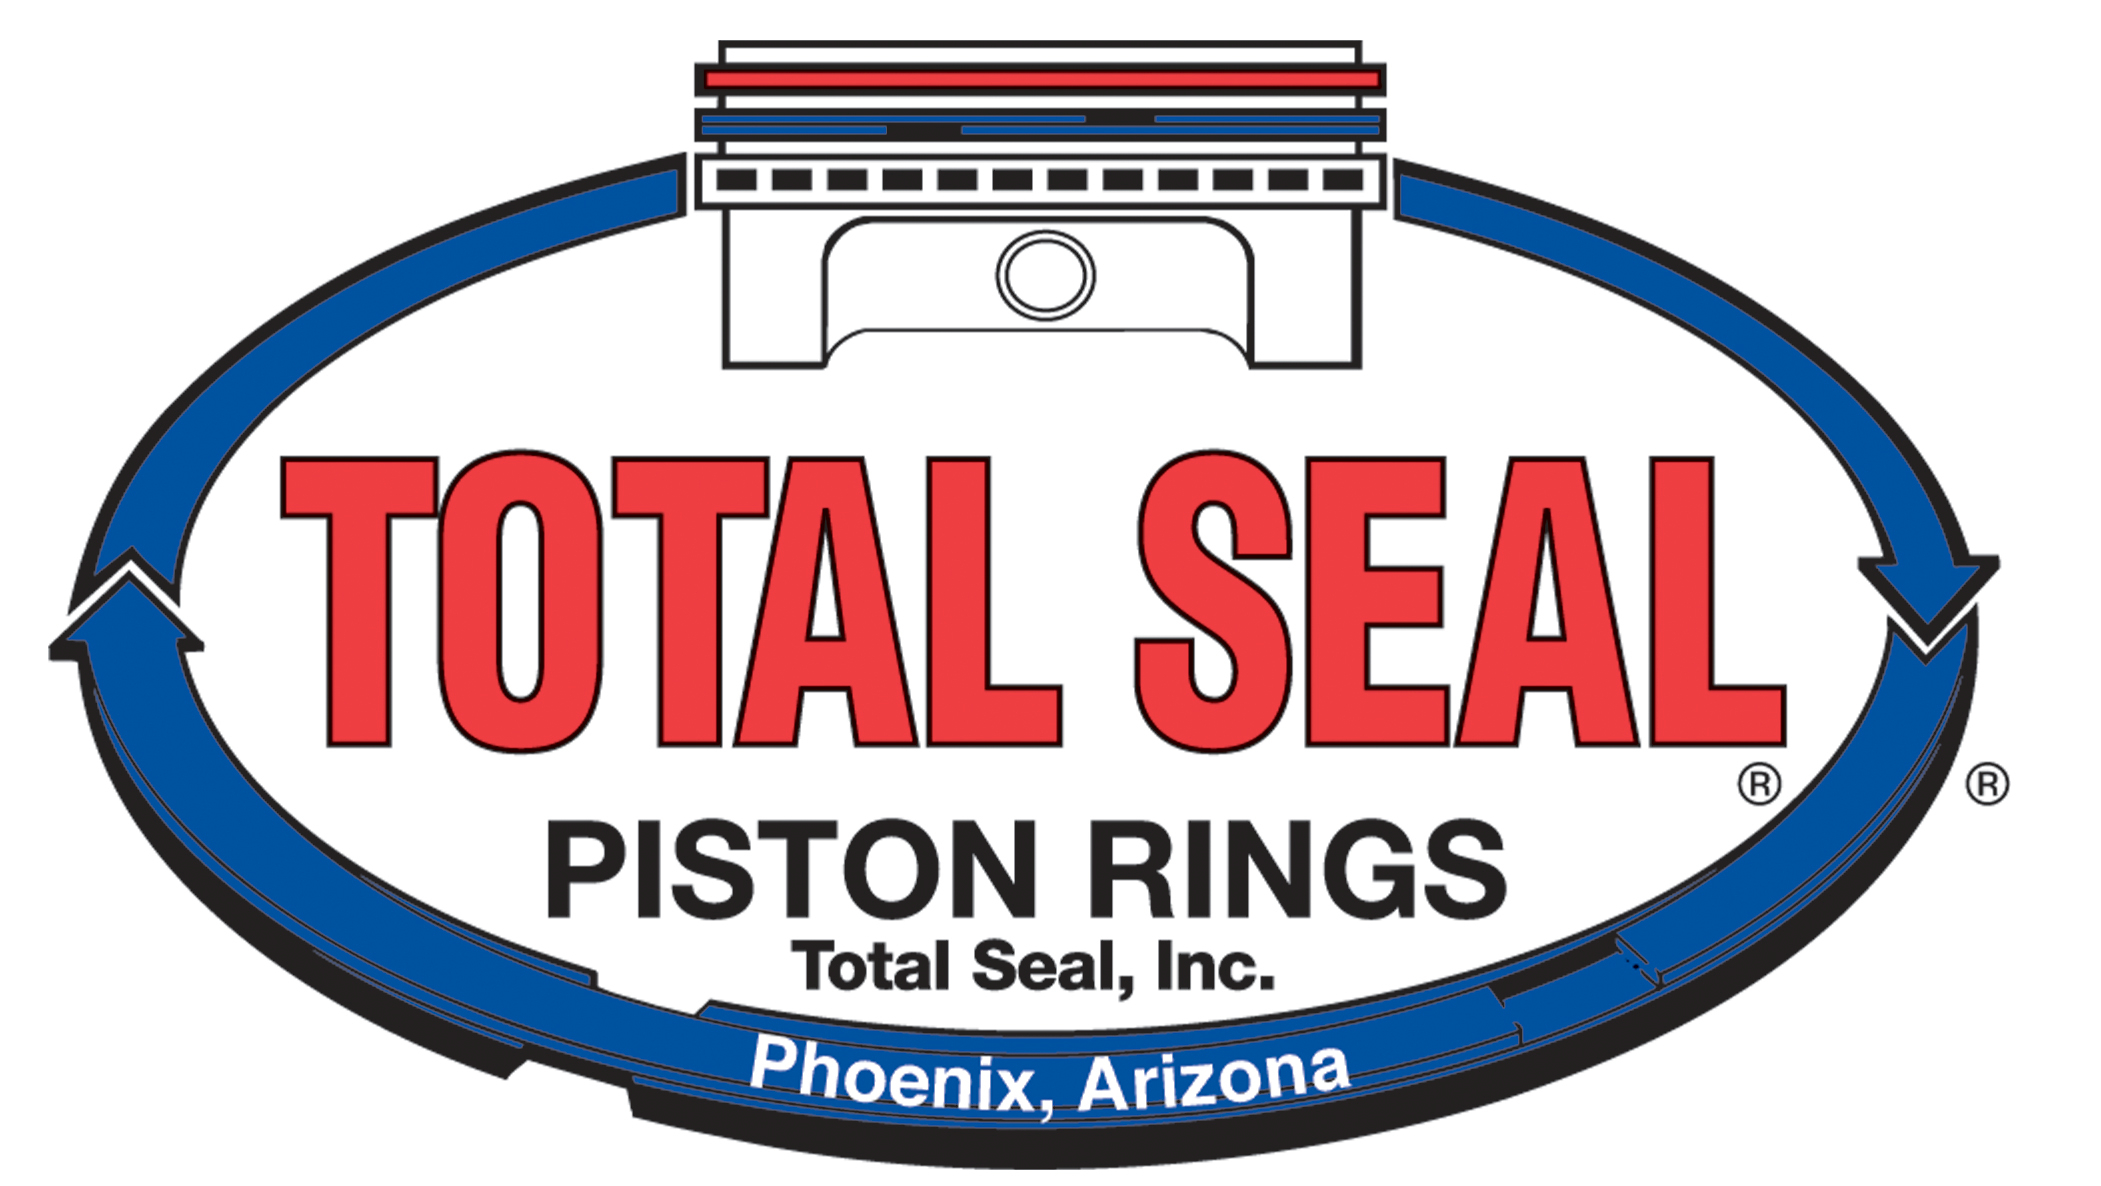 Total Seal logo